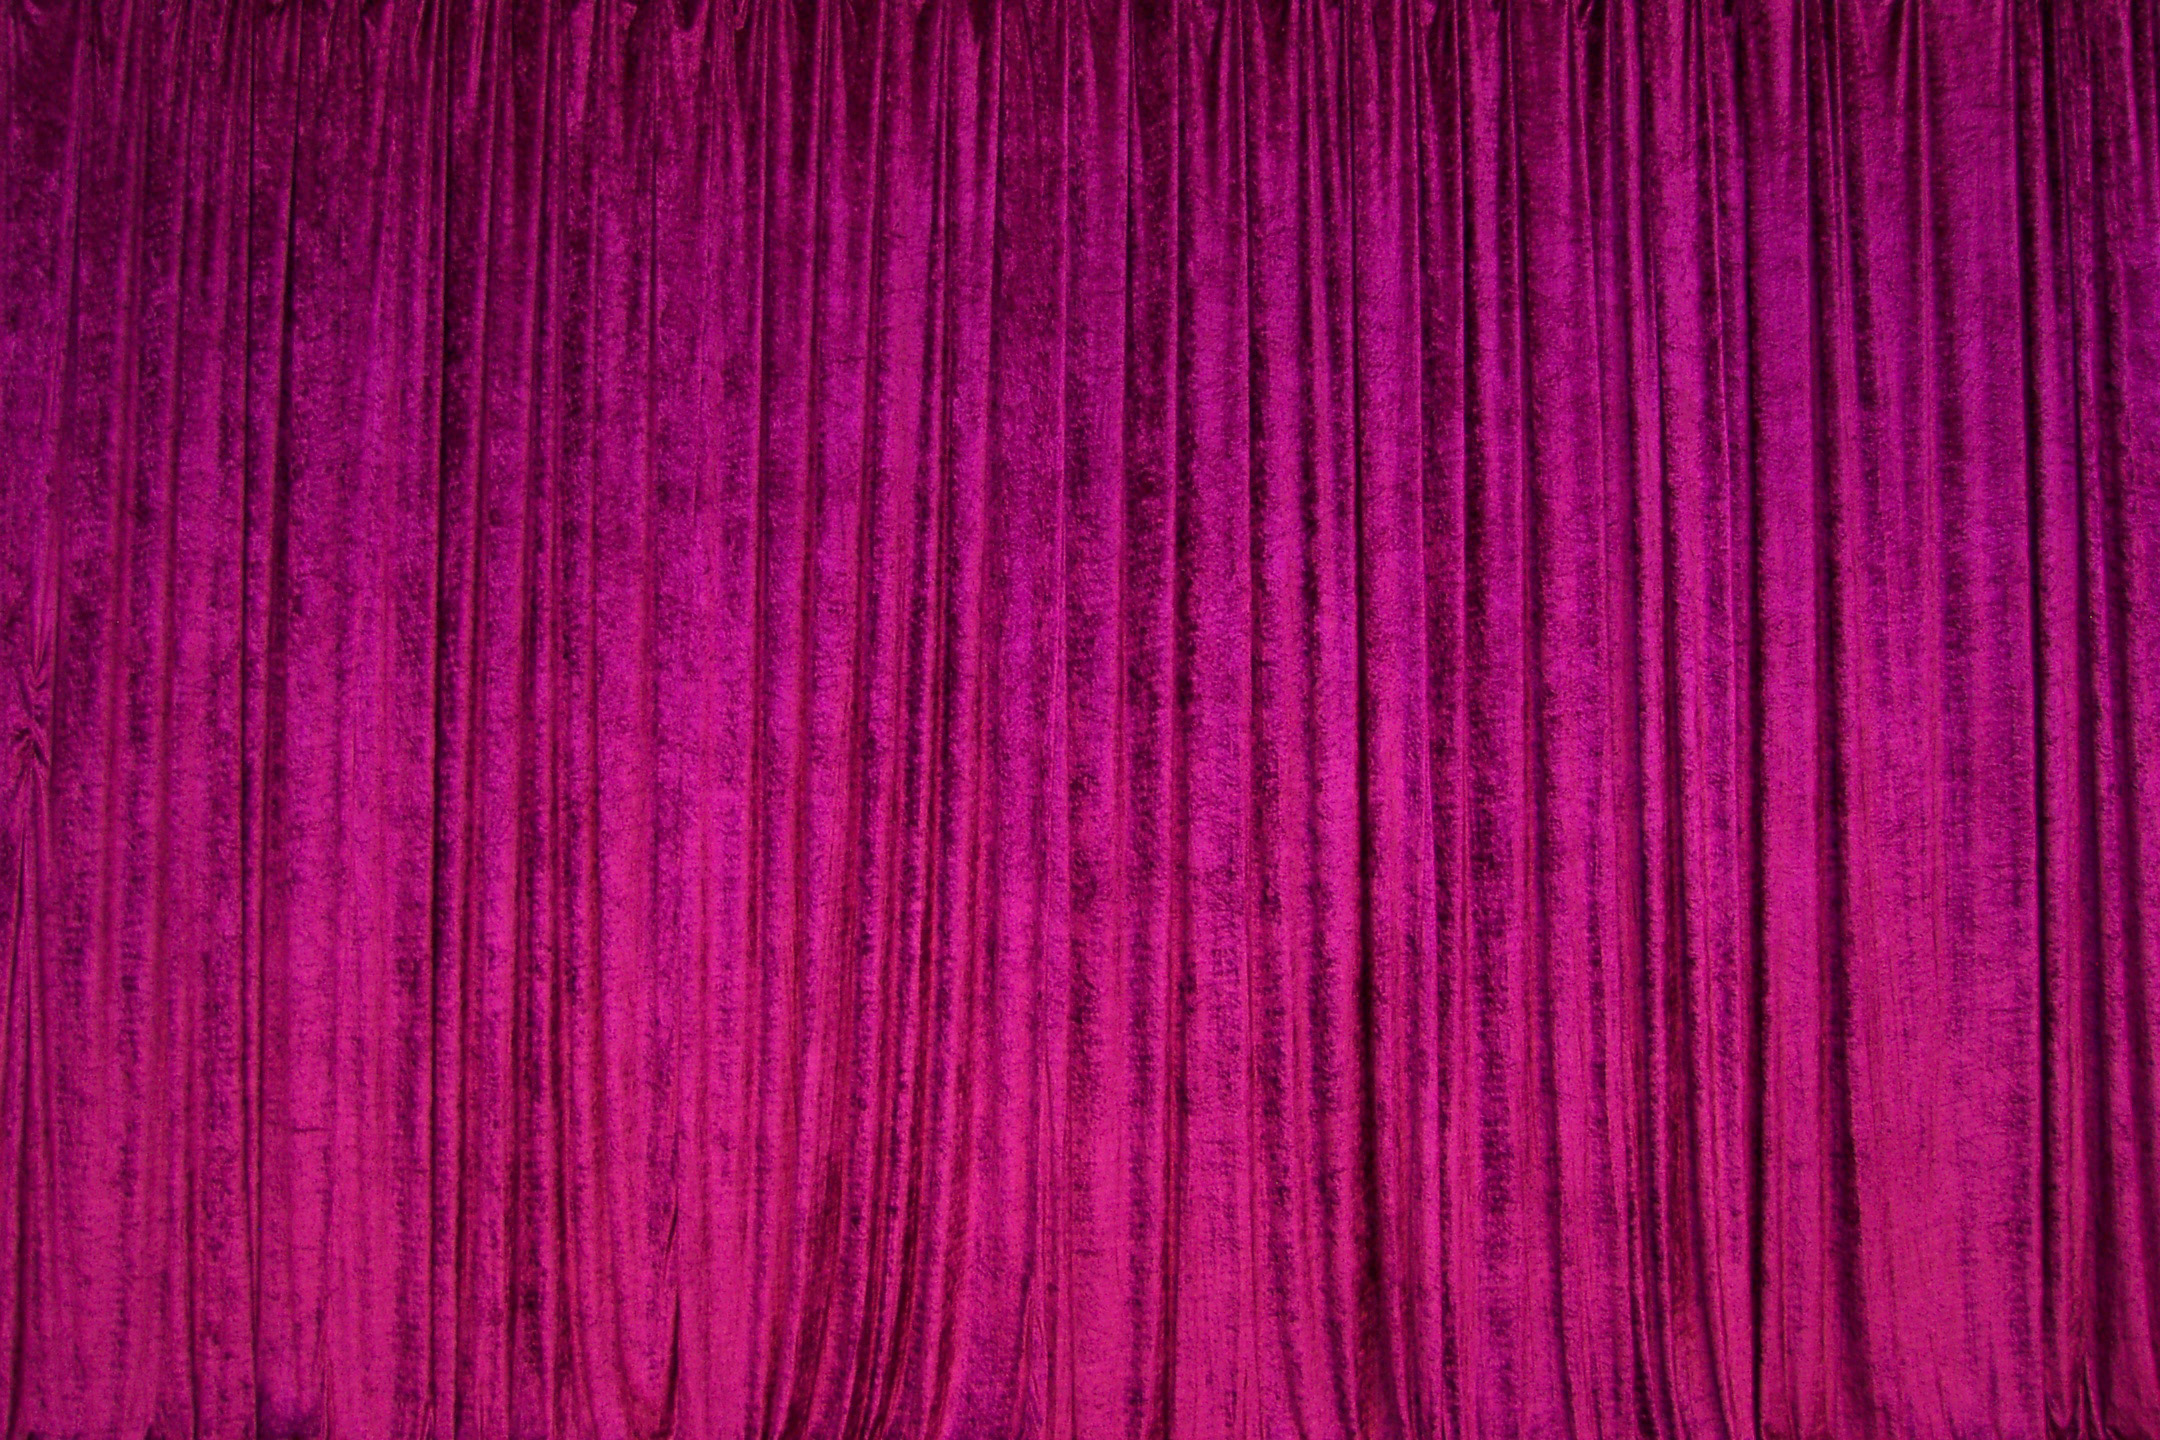 velvet, texture, background, pink velvet texture